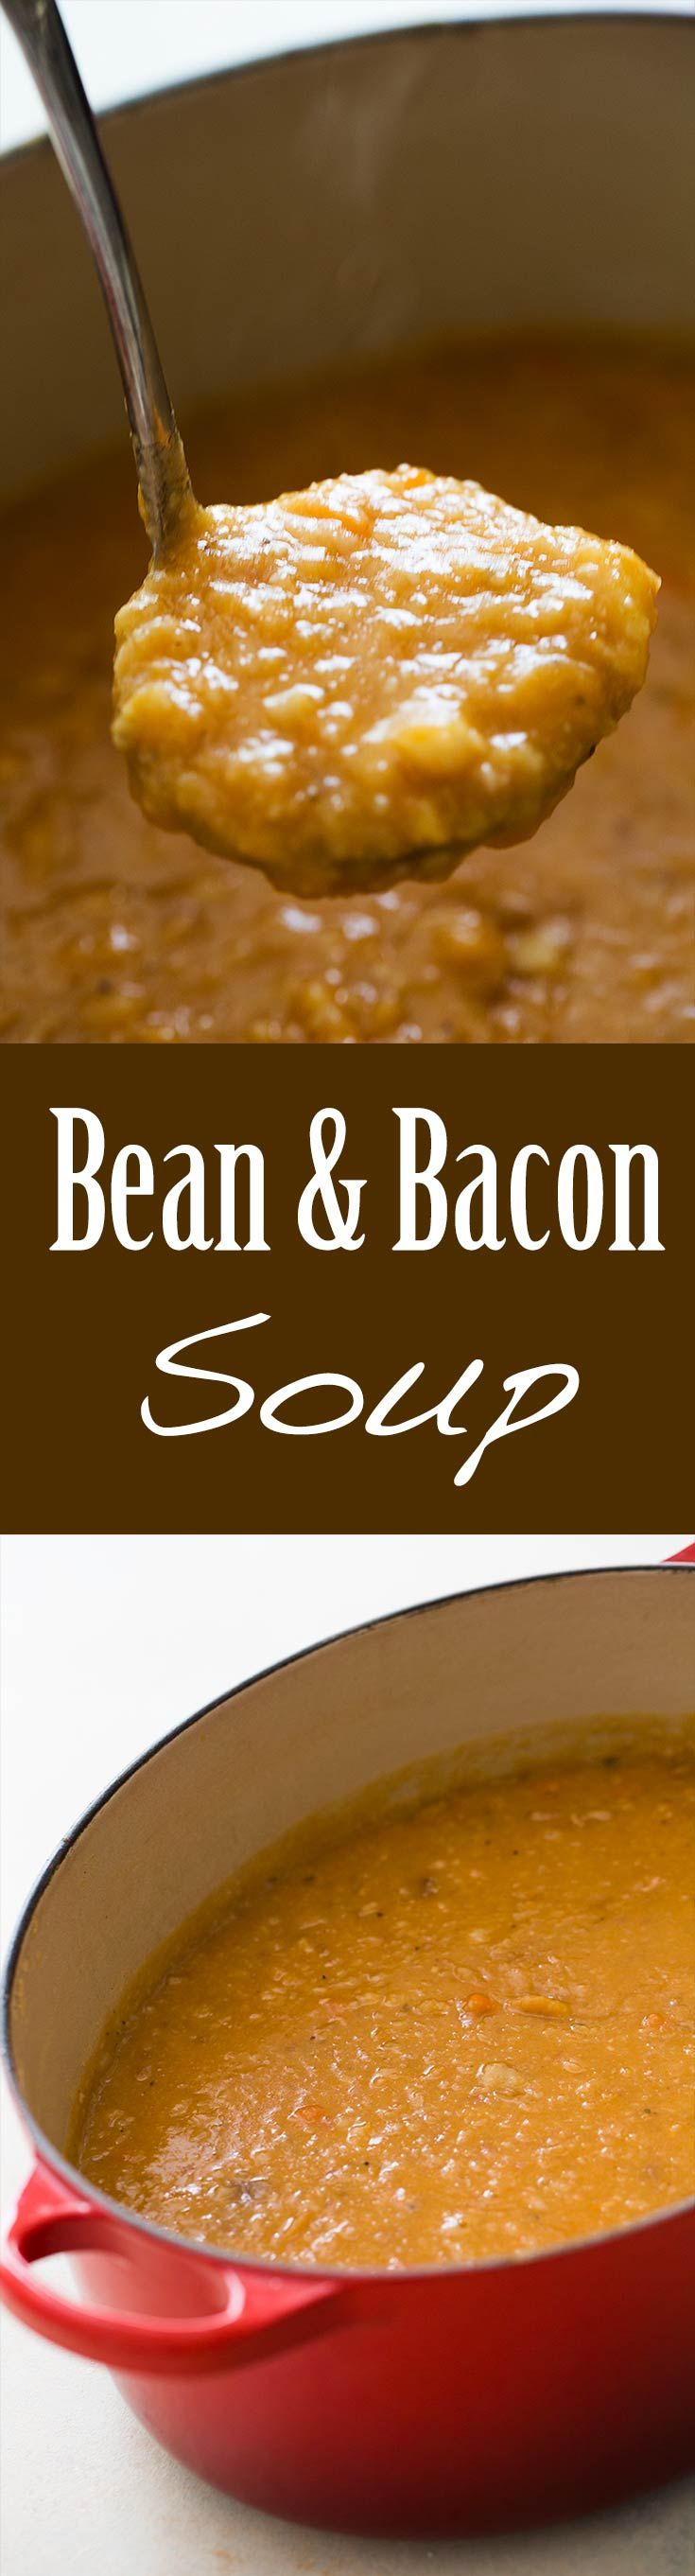 ... soup ever! Bean and bacon soup with Great Northern white beans and